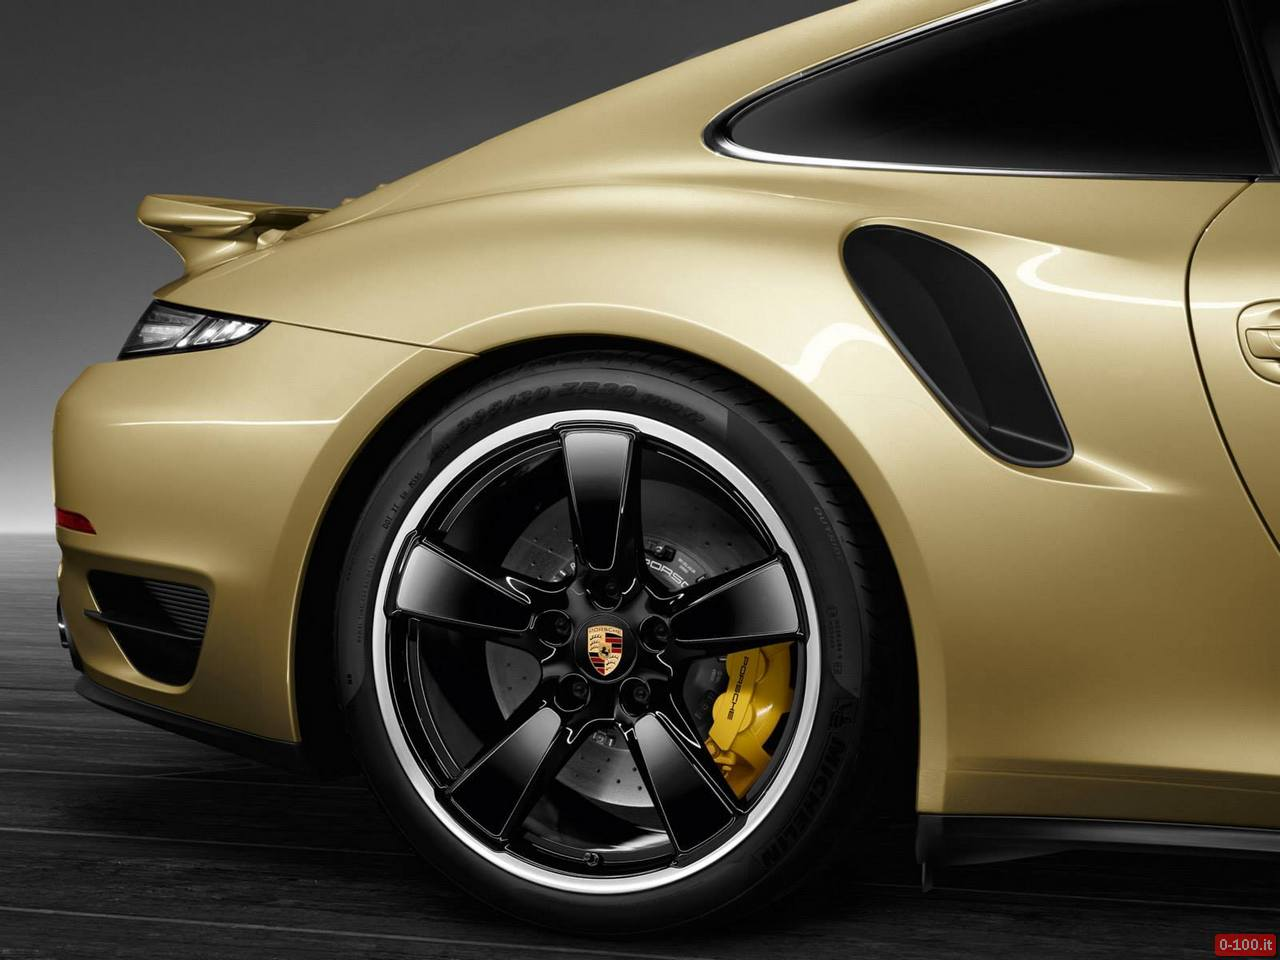 prosche-991-turbo-exclusive-oro-gold-0-100_4